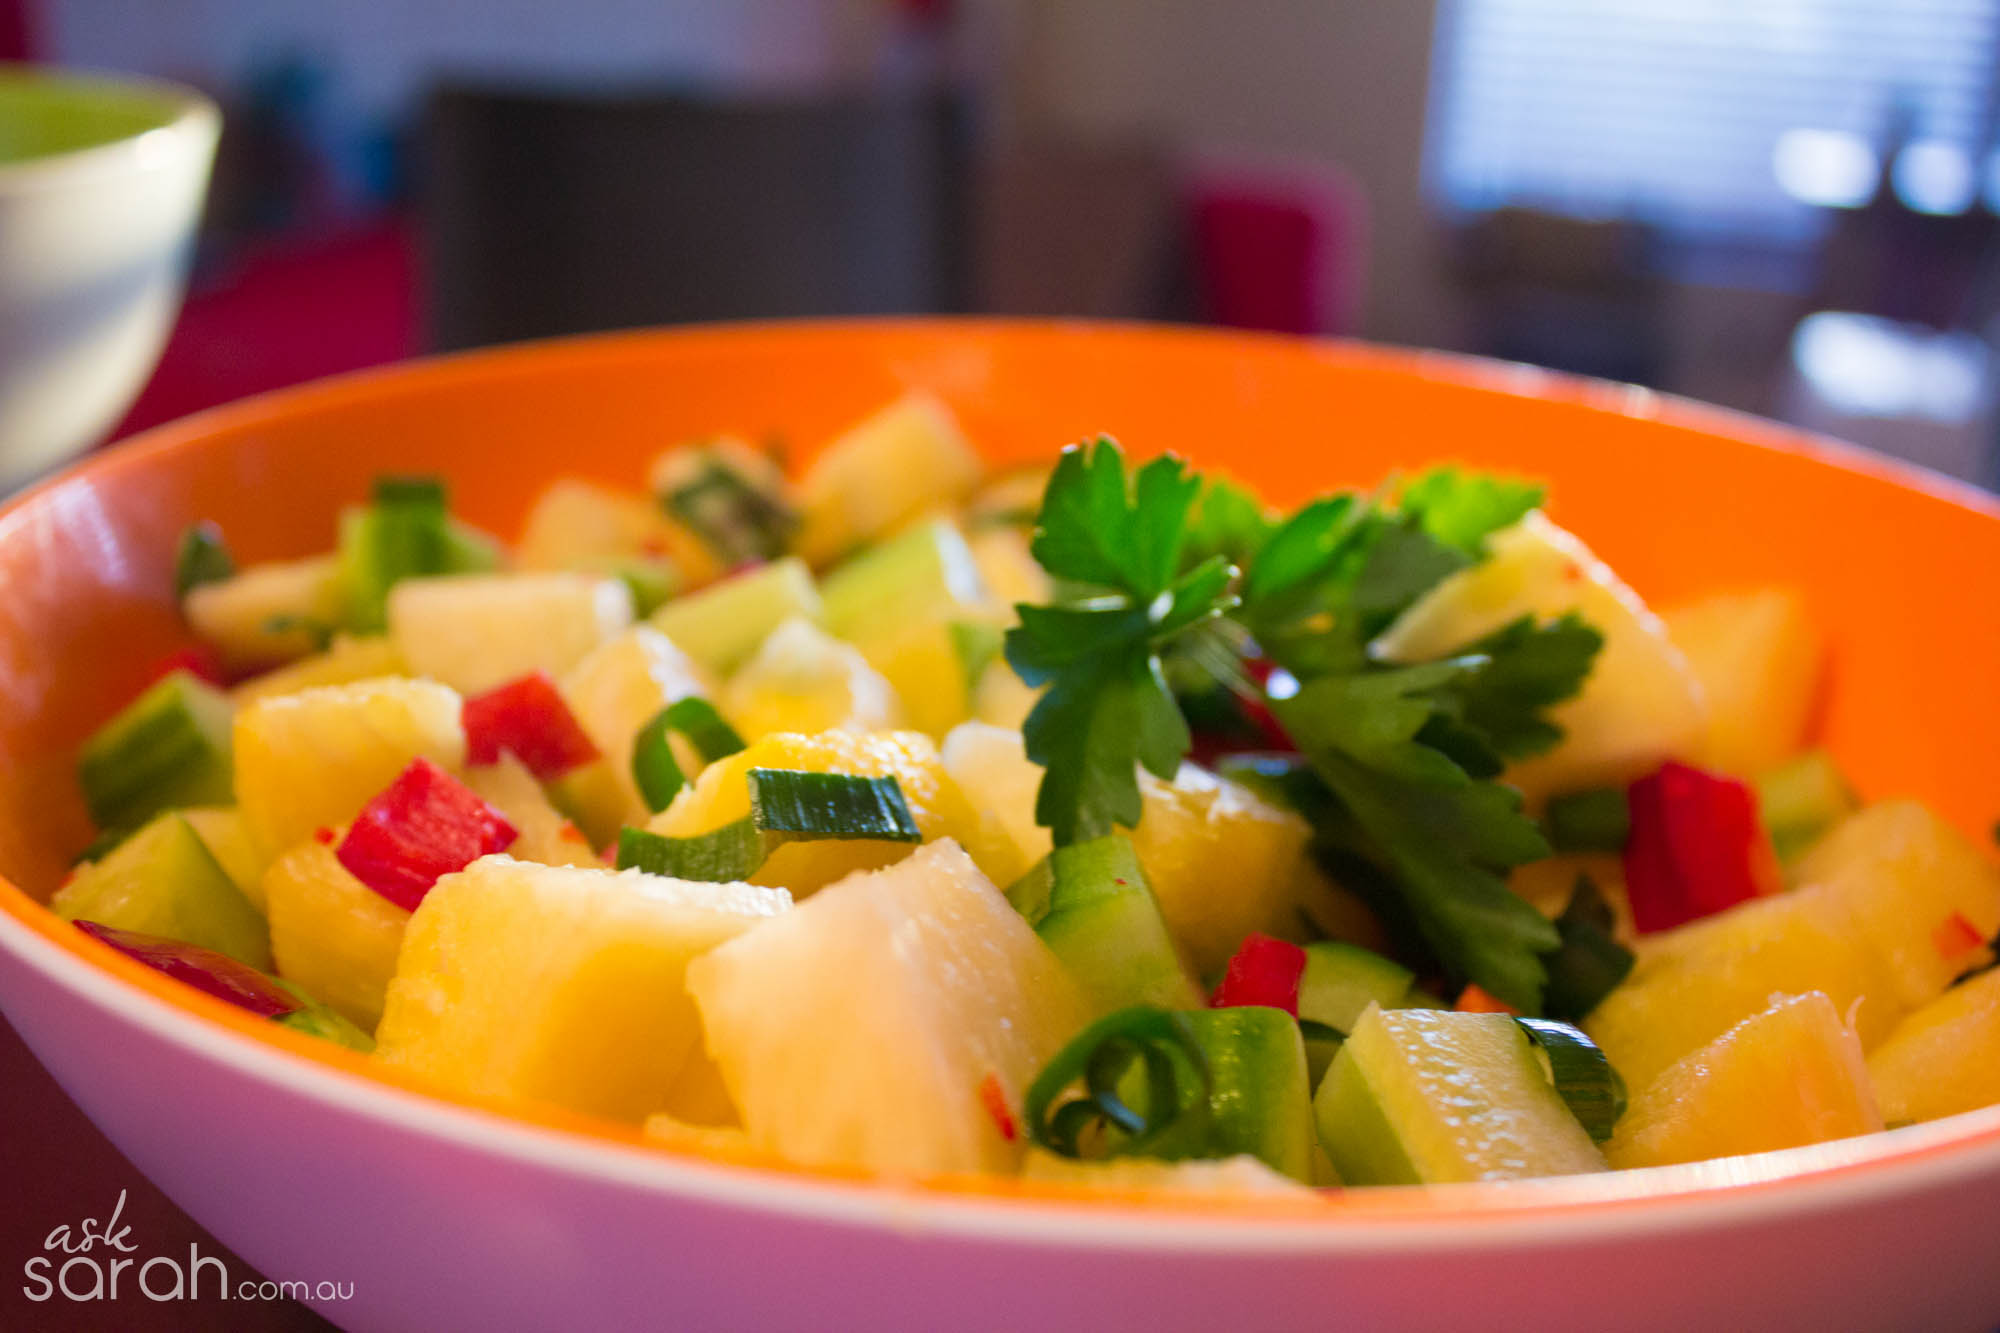 Recipe: Spicy Pineapple Salad